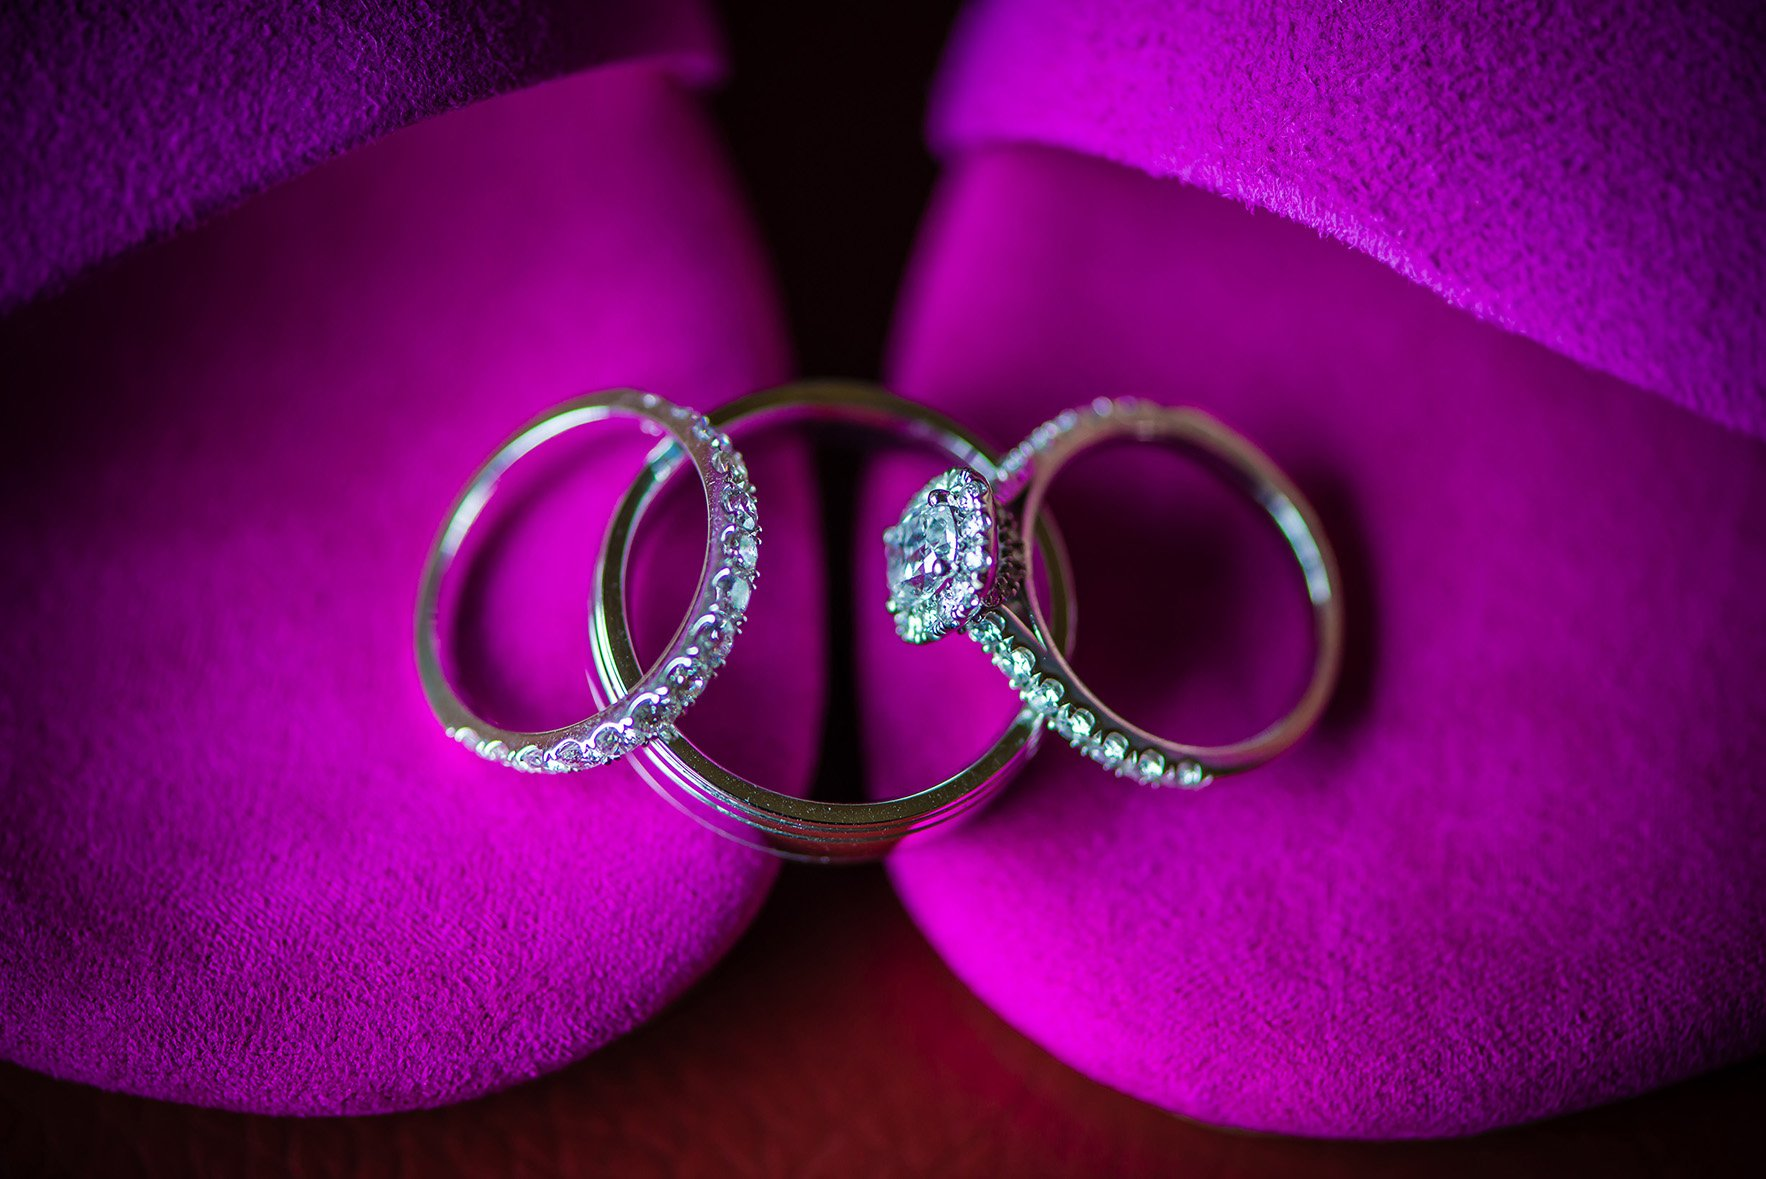 Wedding-Photography-Ring details